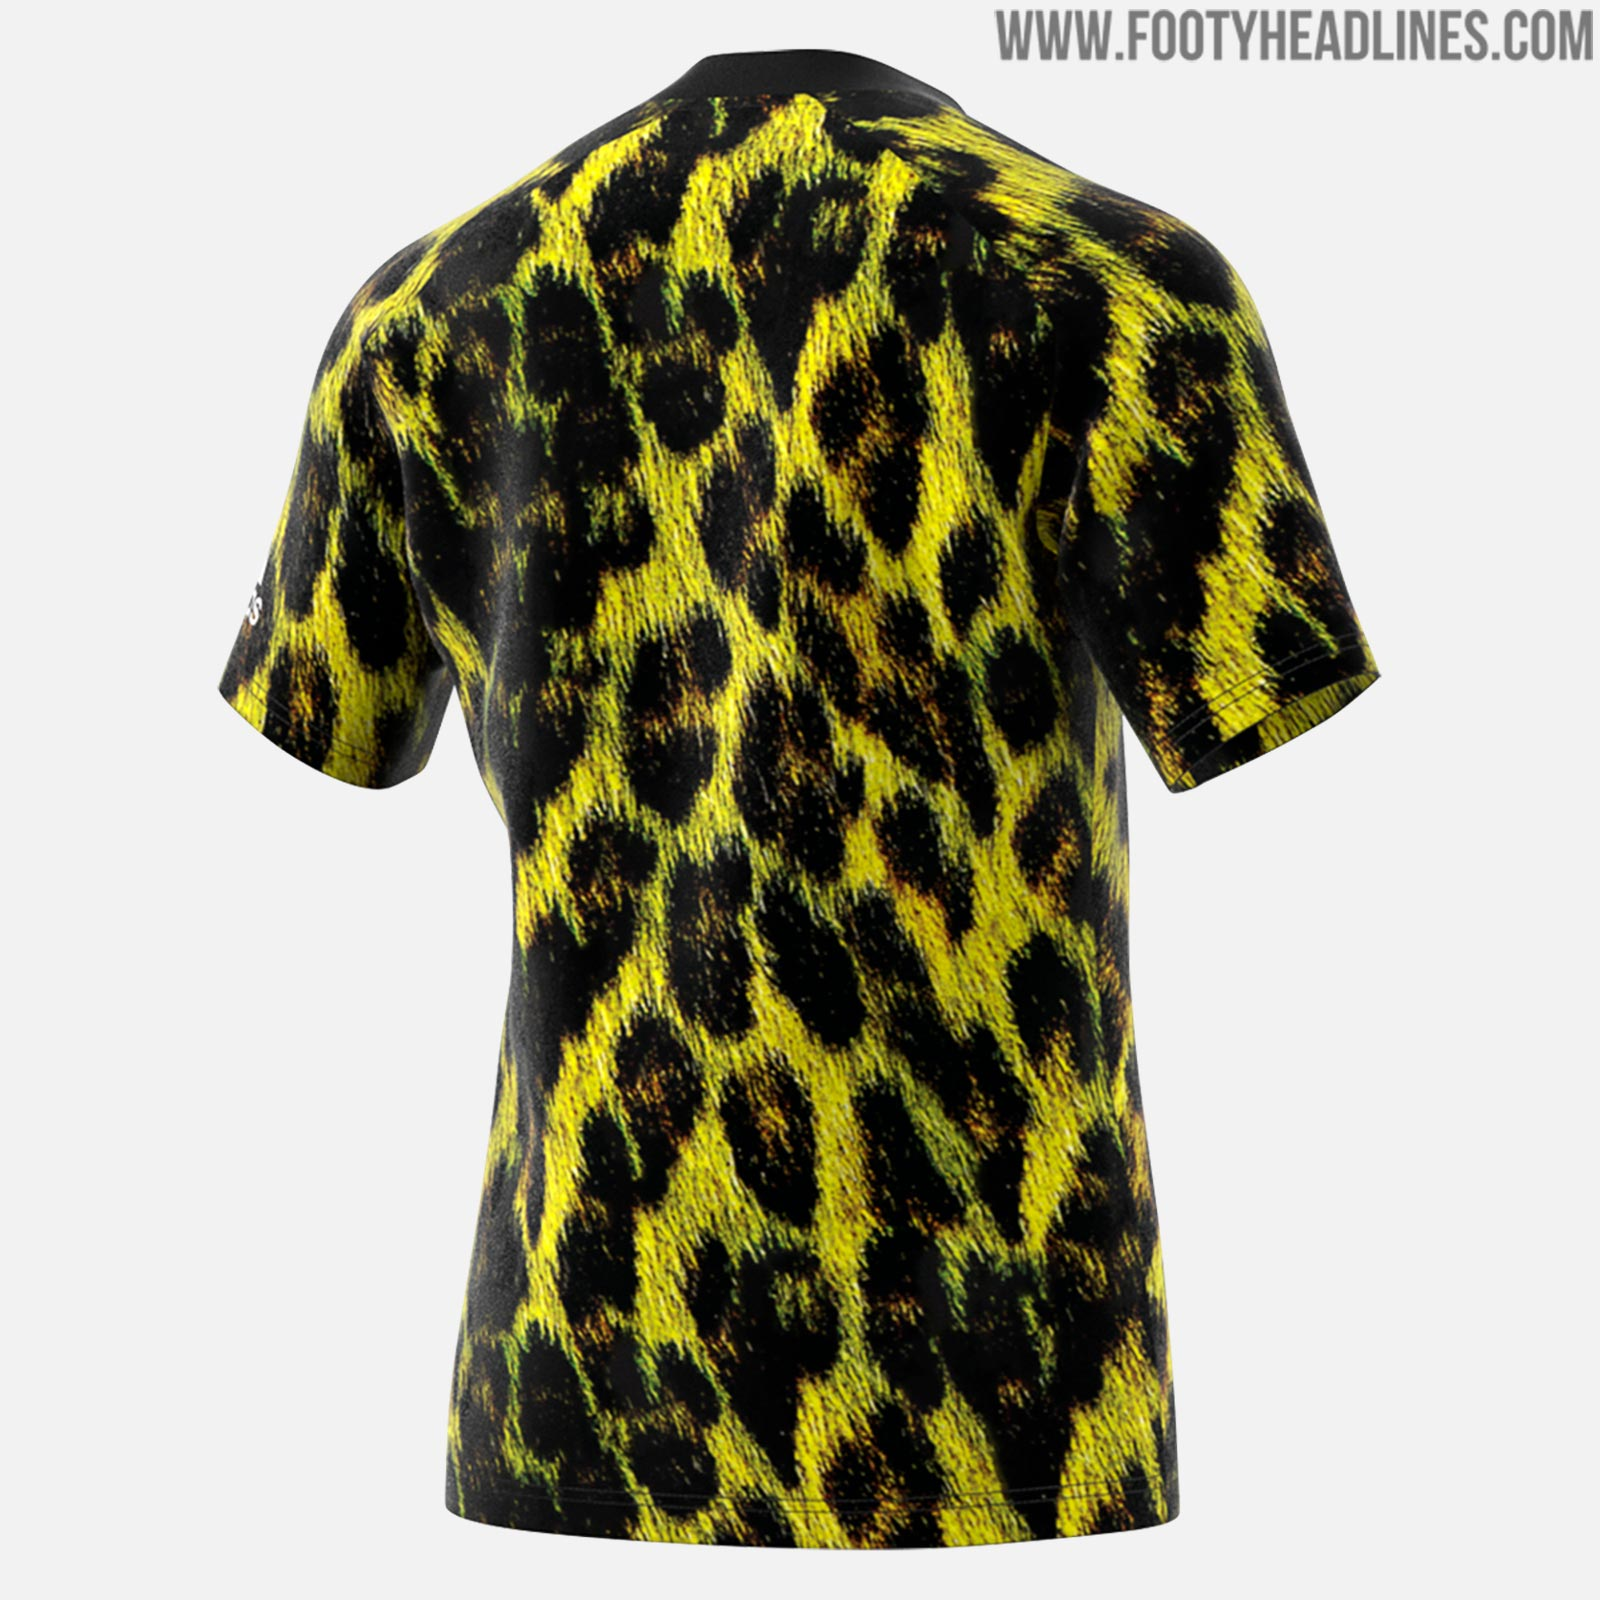 ... Adidas x EA Sports Man United Fourth kit boasts an all-over black and  yellow graphic print that shows a leopard. Just as Man Utd s  special-edition kit f5becbbf4